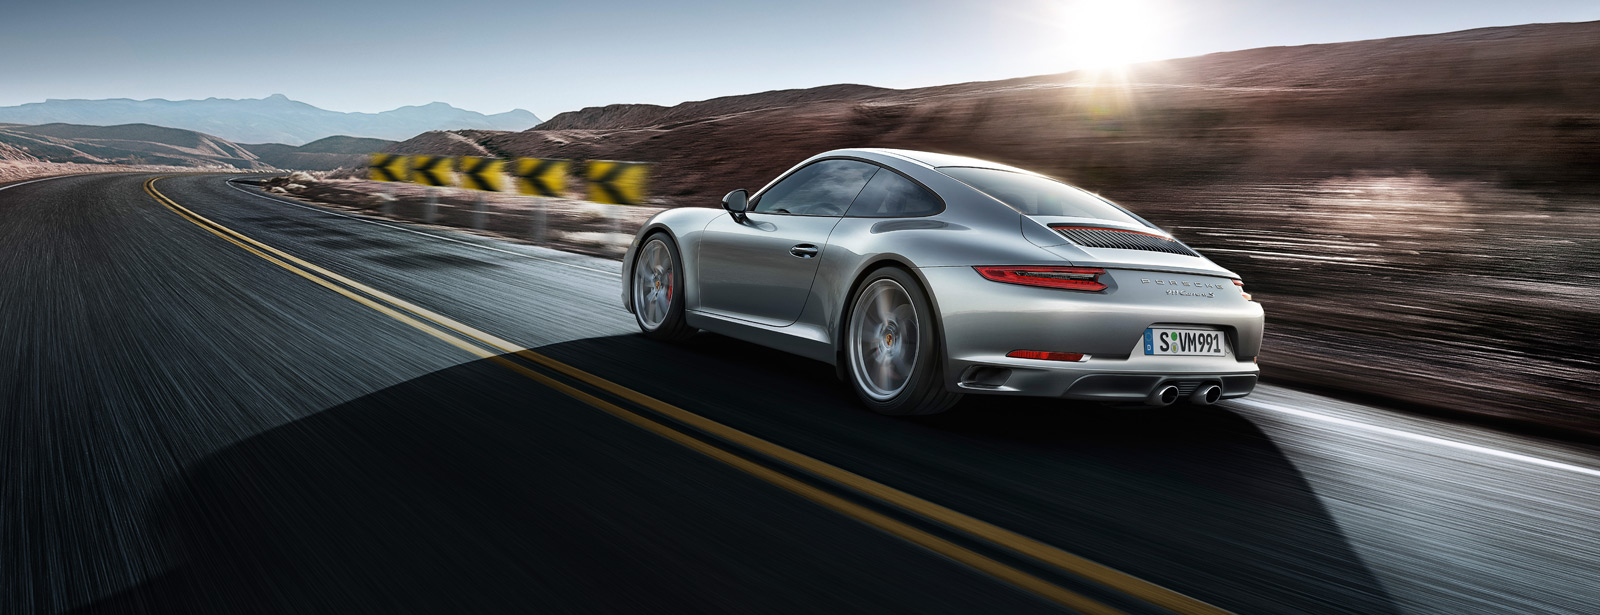 Porsche The new 911 Carrera S